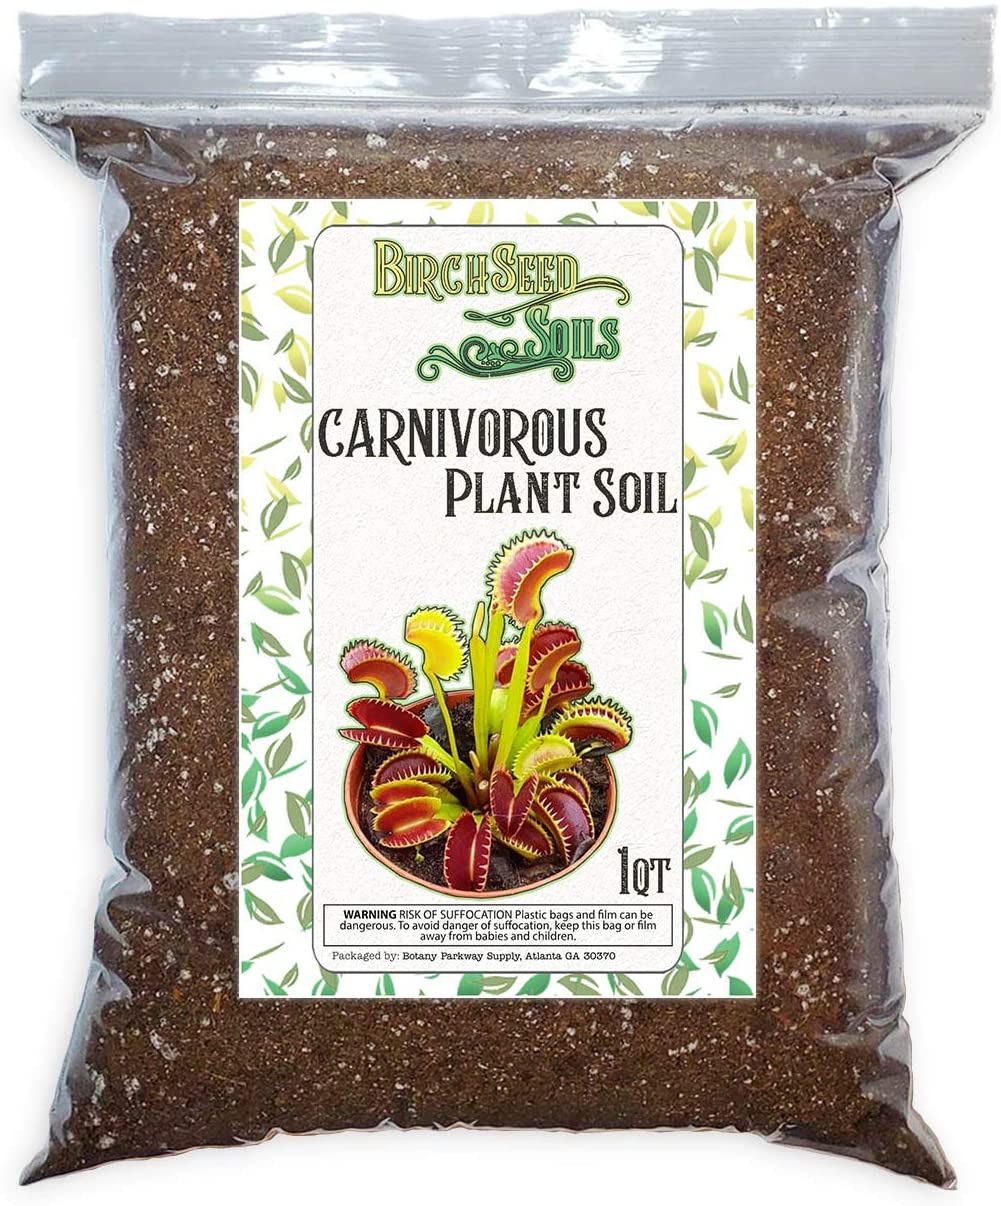 Carnivorous Product Plant Soil Mix All Natural for Fly Tra Perfect Venus free